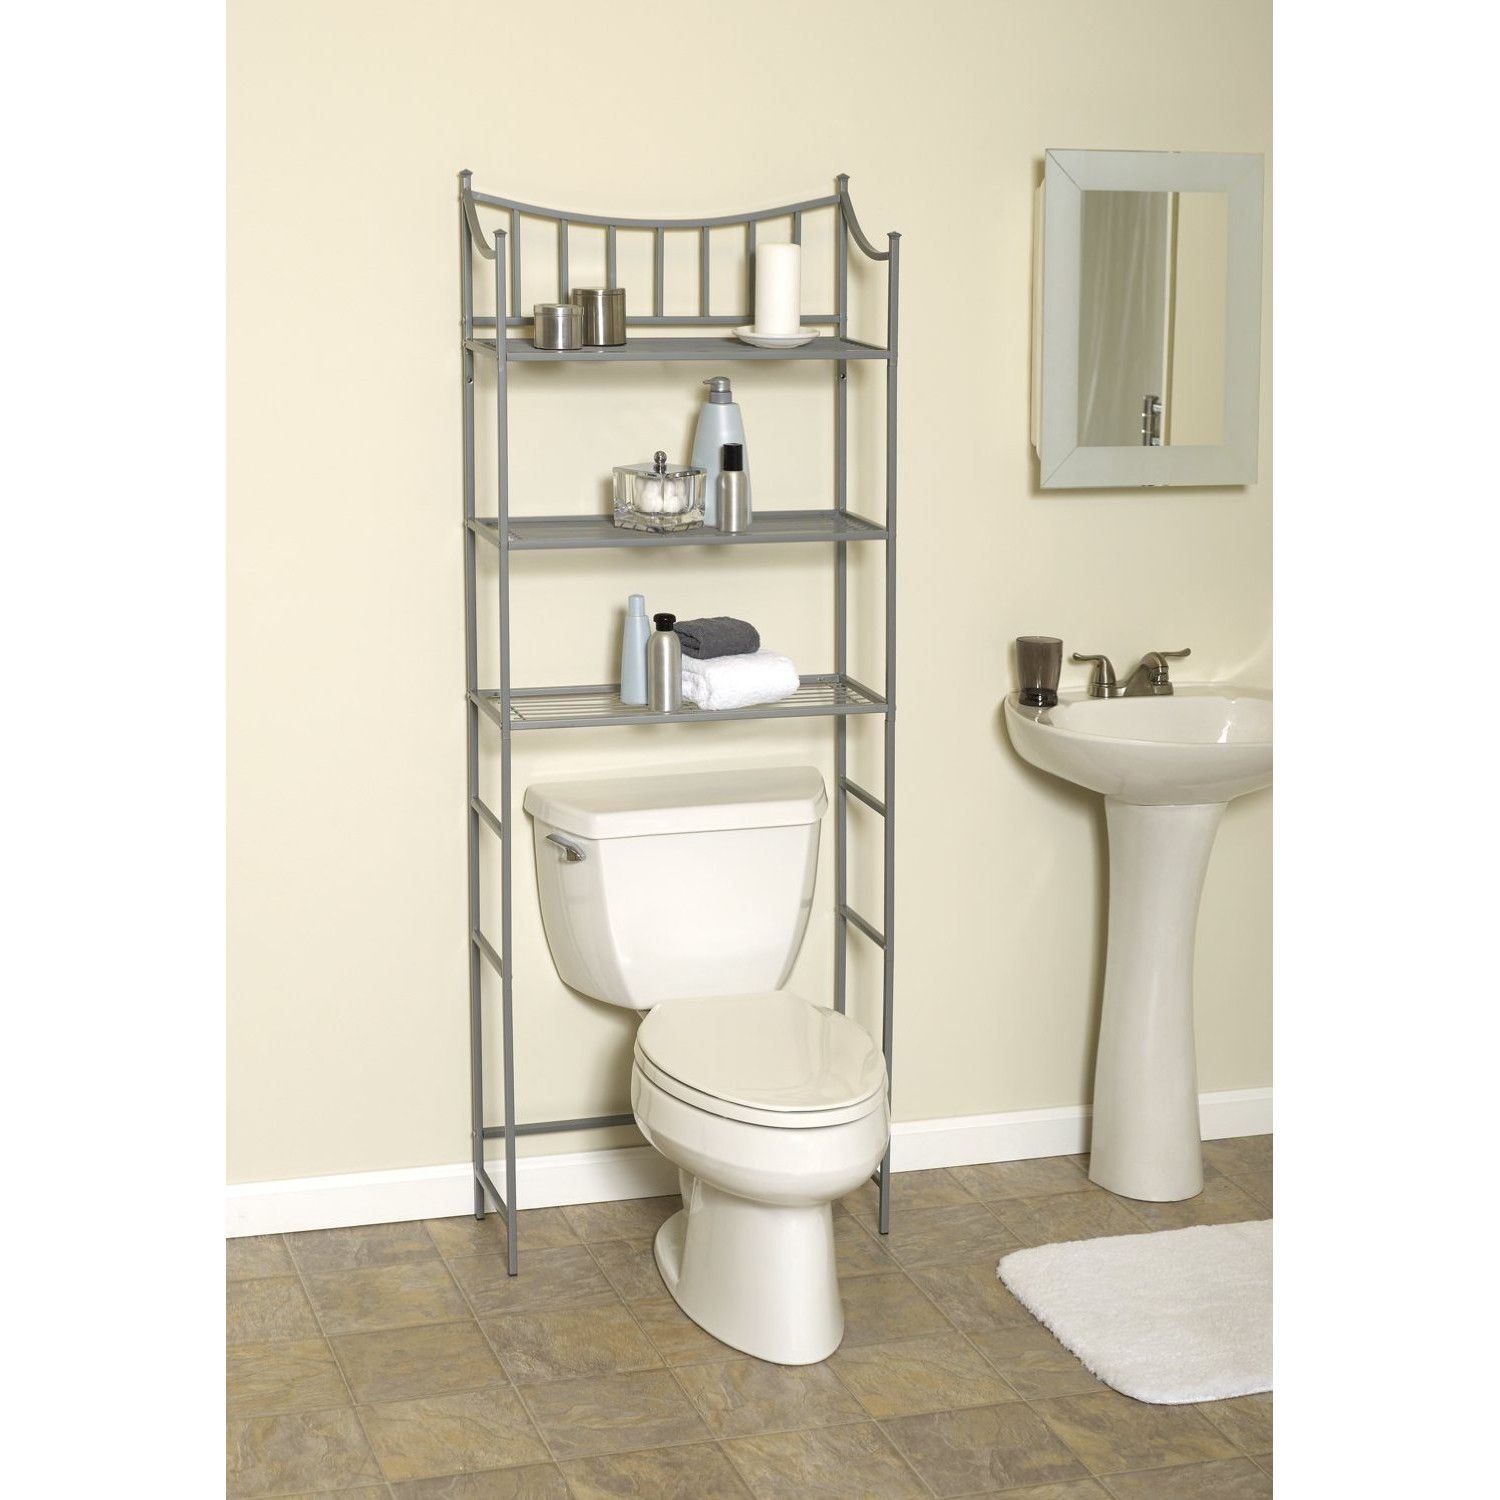 Bathroom Over Toilet Rack : Shelves over the toilet as additional storage for